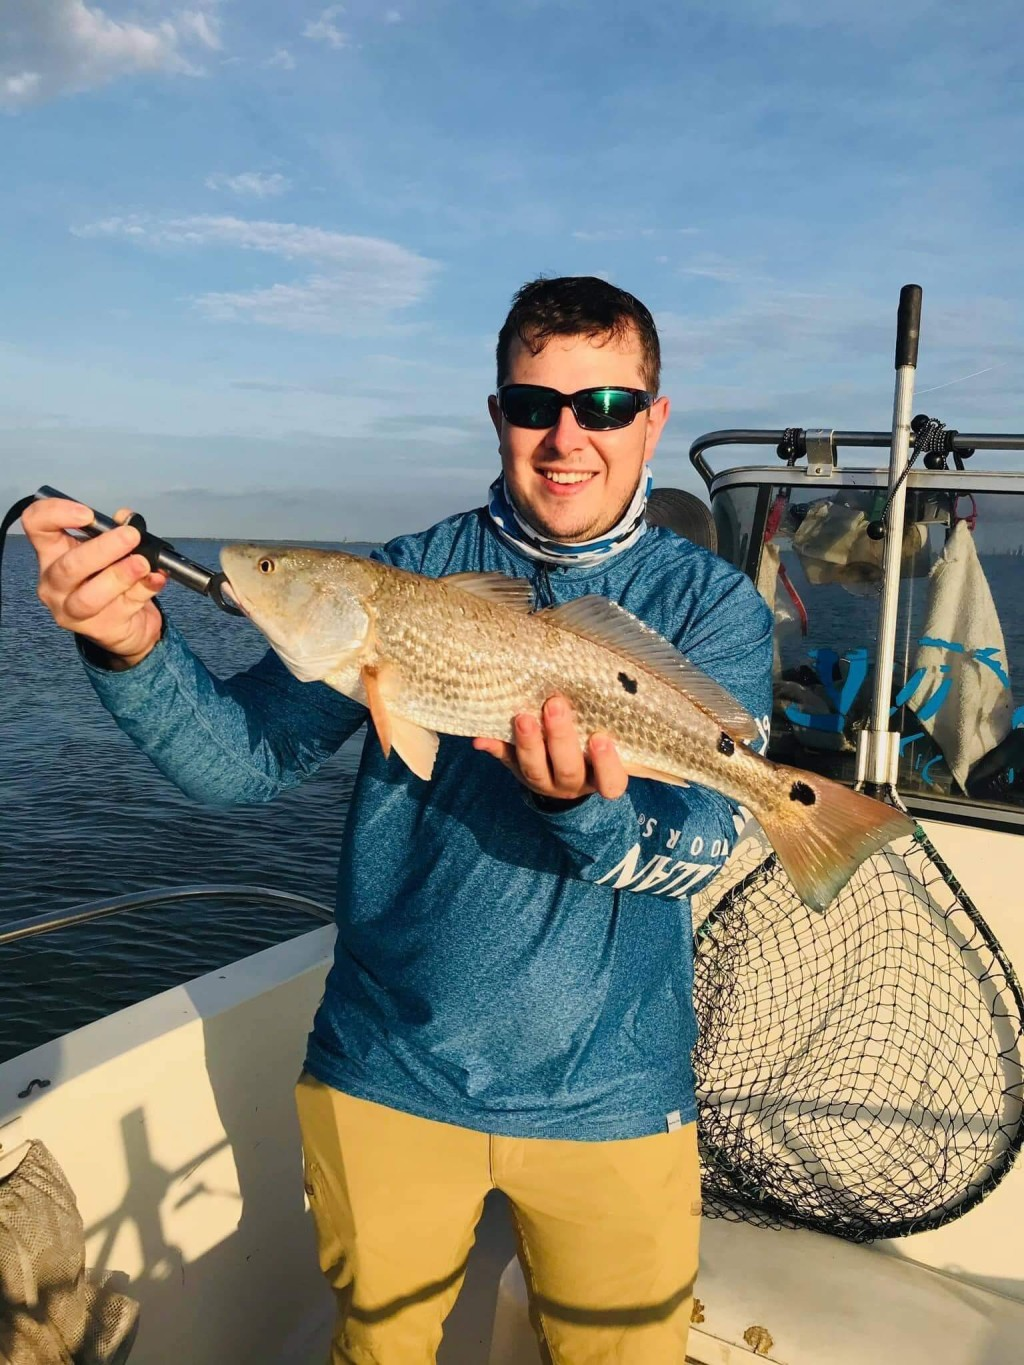 Full Day Fishing Trip - 18' Hydra Sport | Captain Experiences